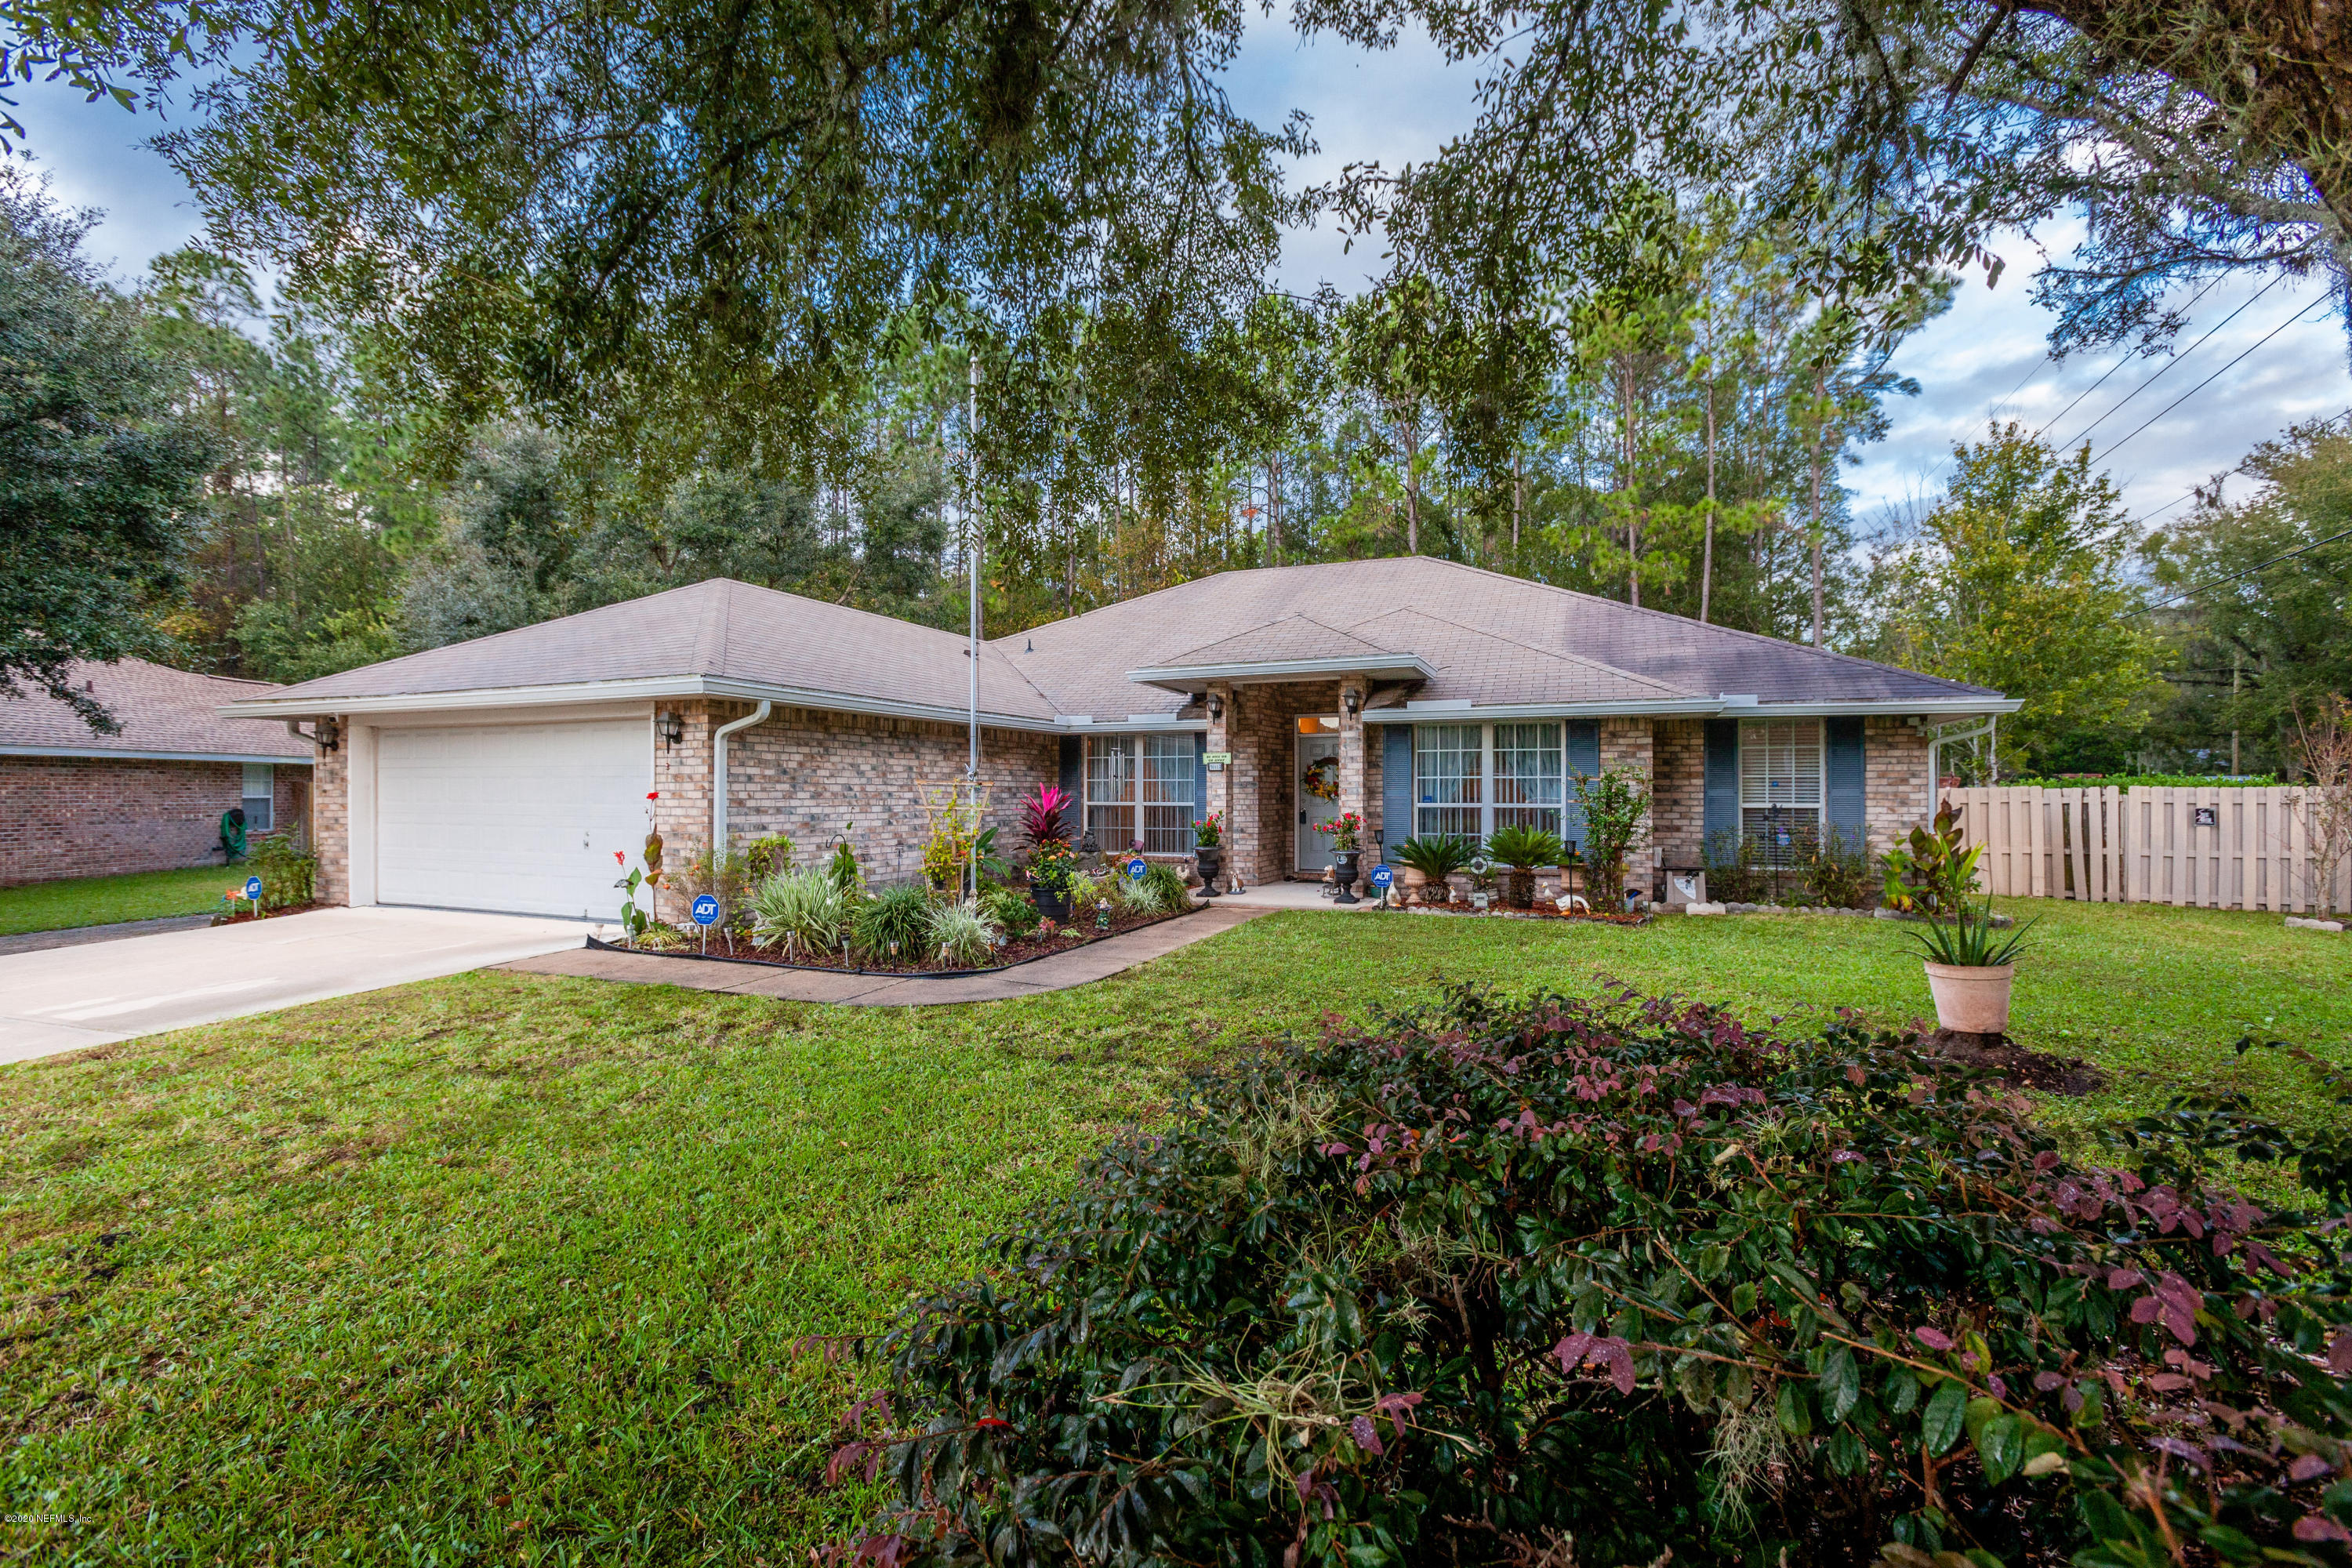 10403 MCGIRTS CREEK, JACKSONVILLE, FLORIDA 32221, 4 Bedrooms Bedrooms, ,2 BathroomsBathrooms,Residential,For sale,MCGIRTS CREEK,1081804